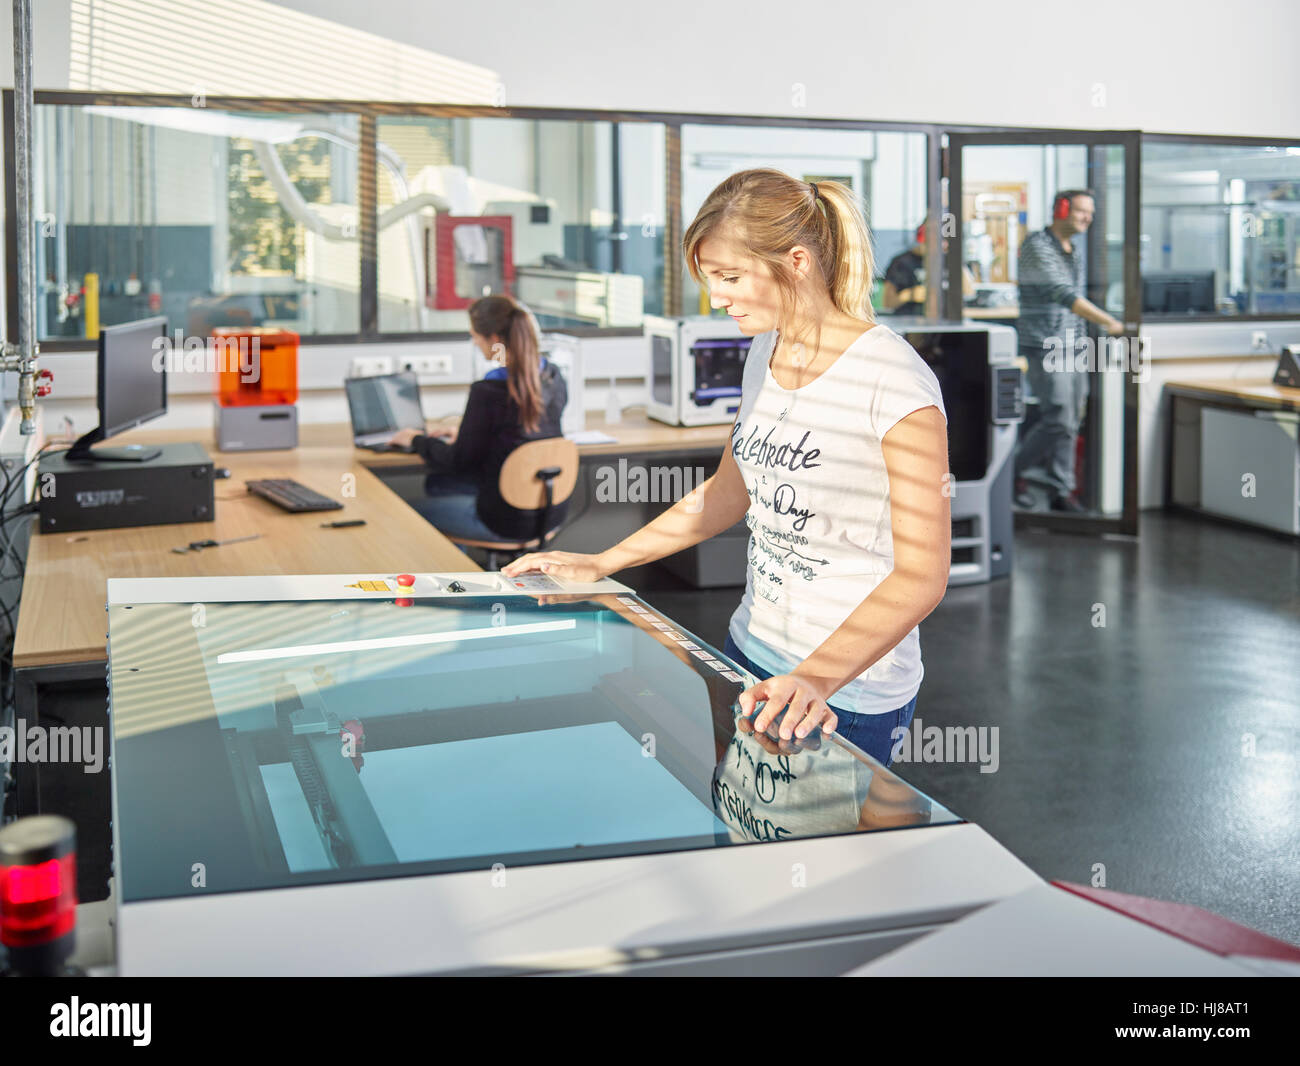 Woman in workshop with laser cutter, Austria - Stock Image